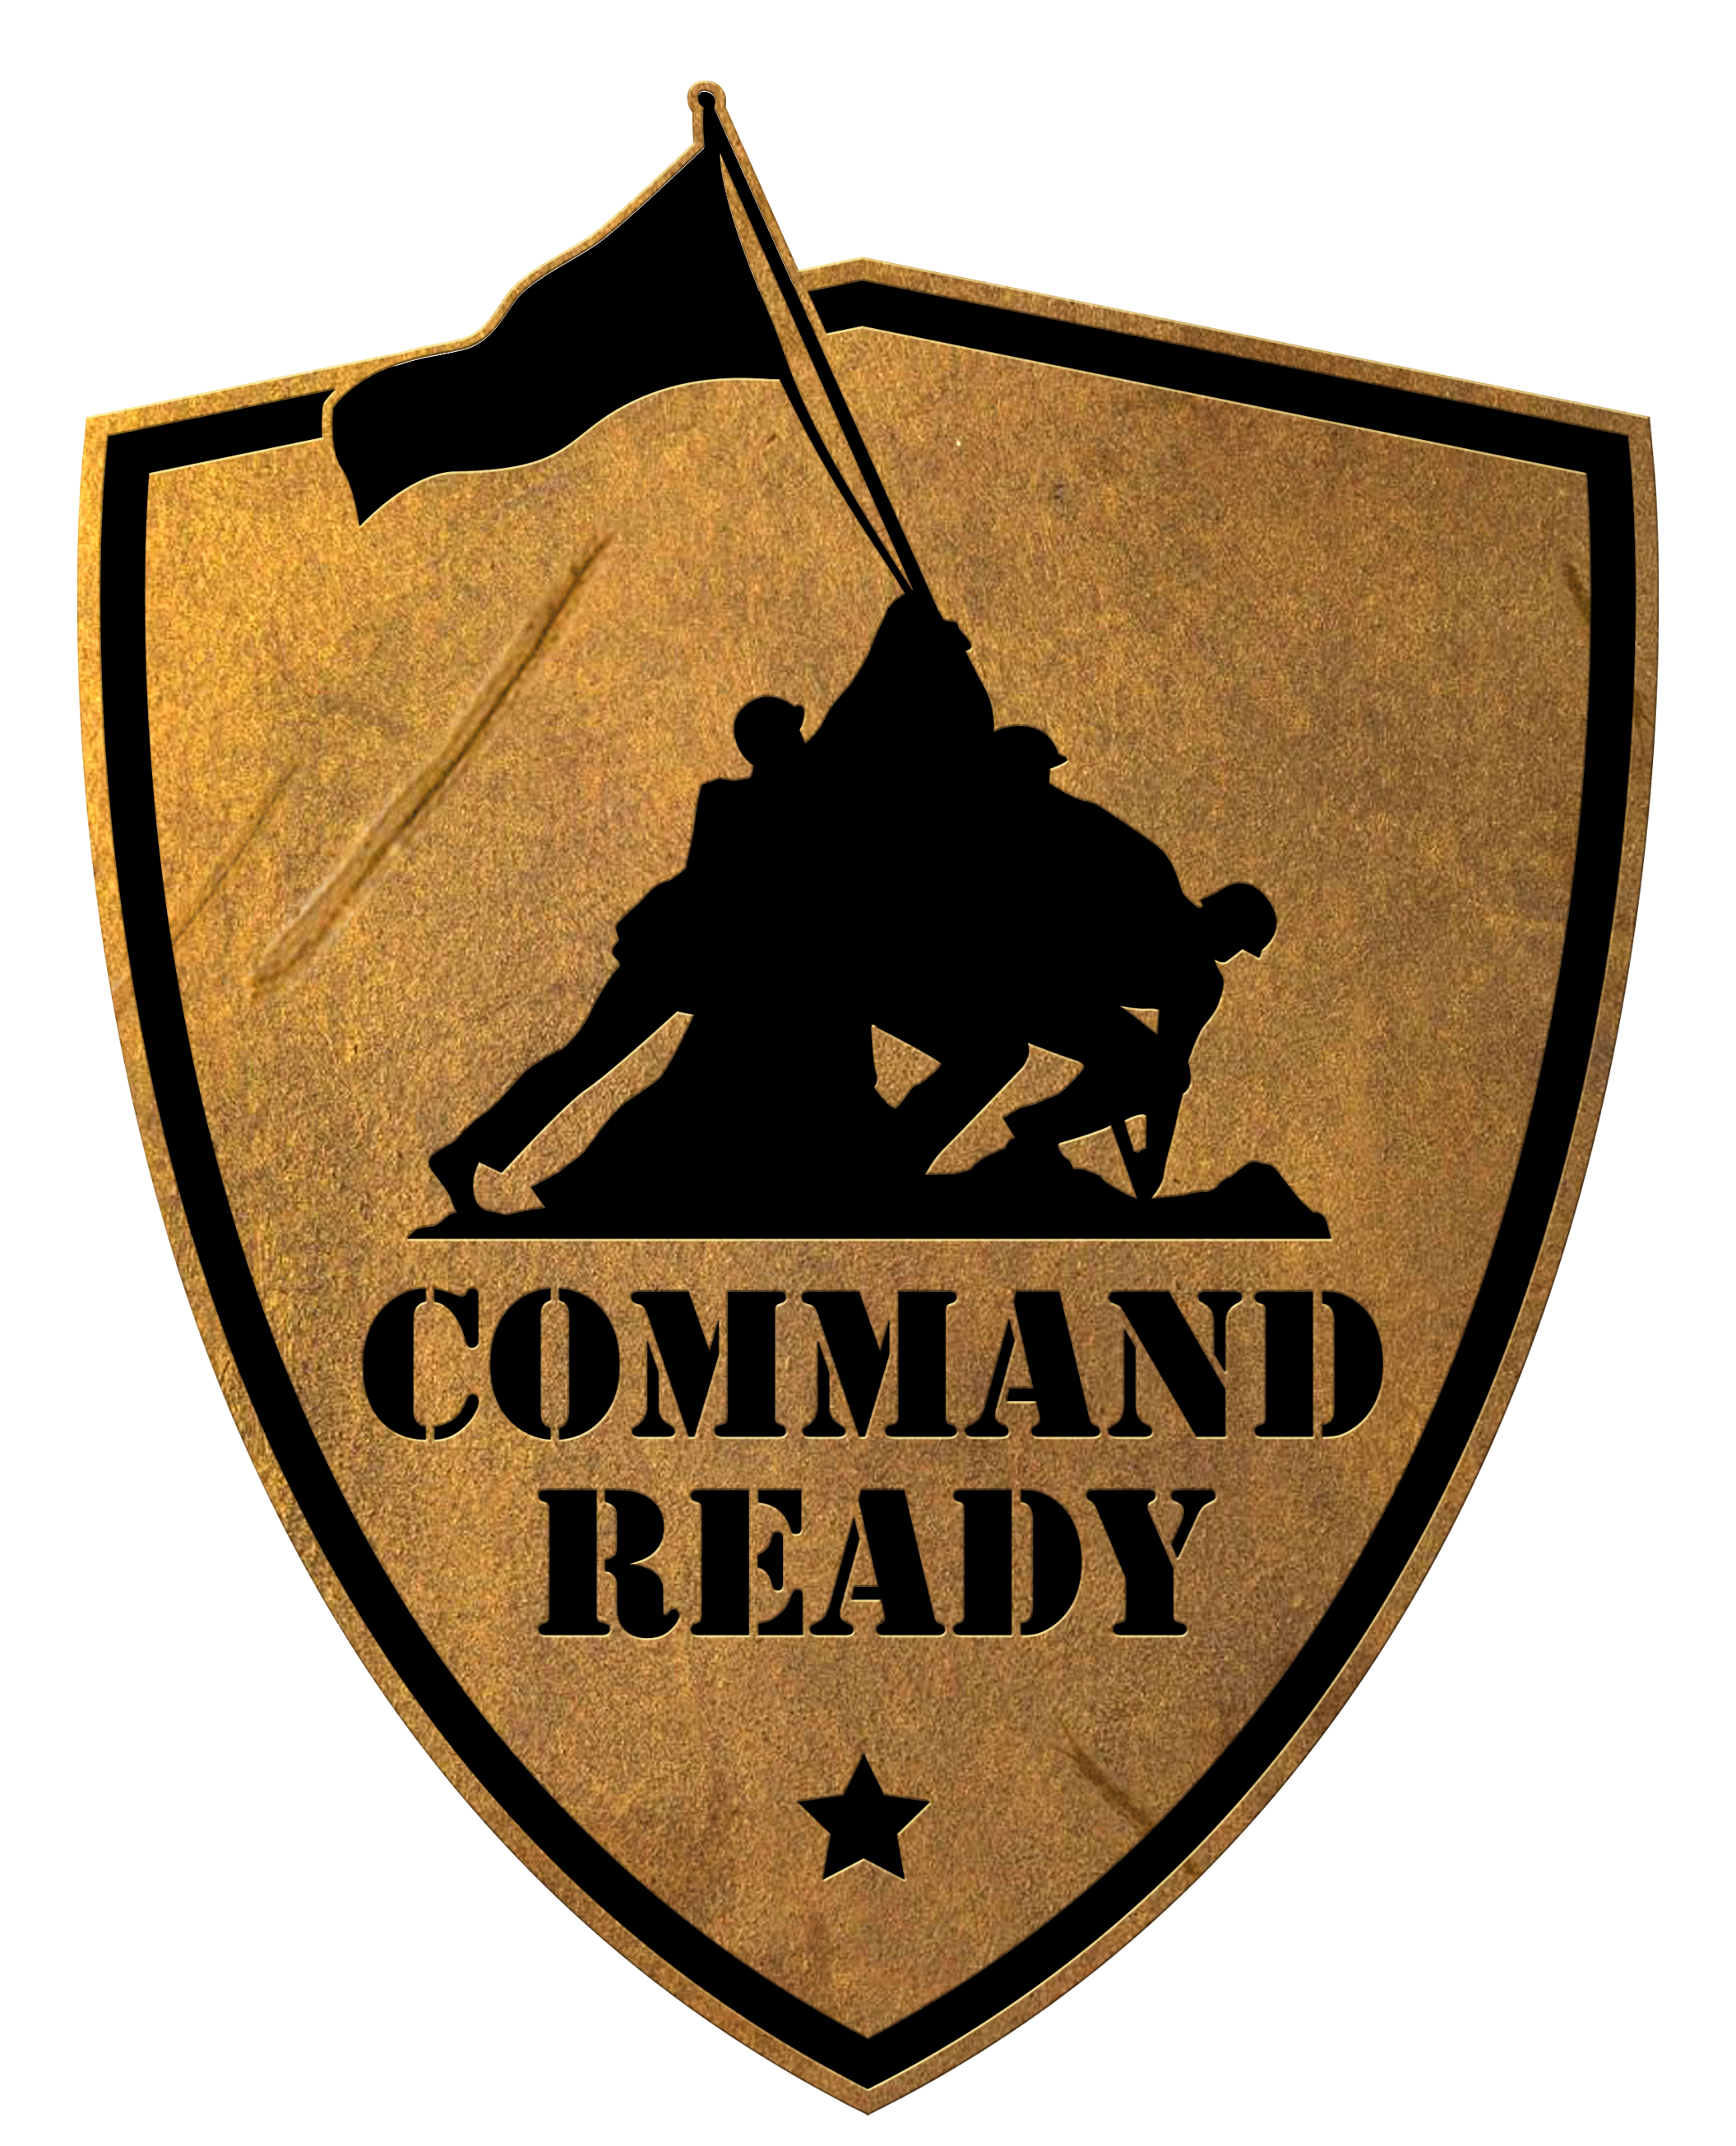 CommandReady_BadgeBronze.png